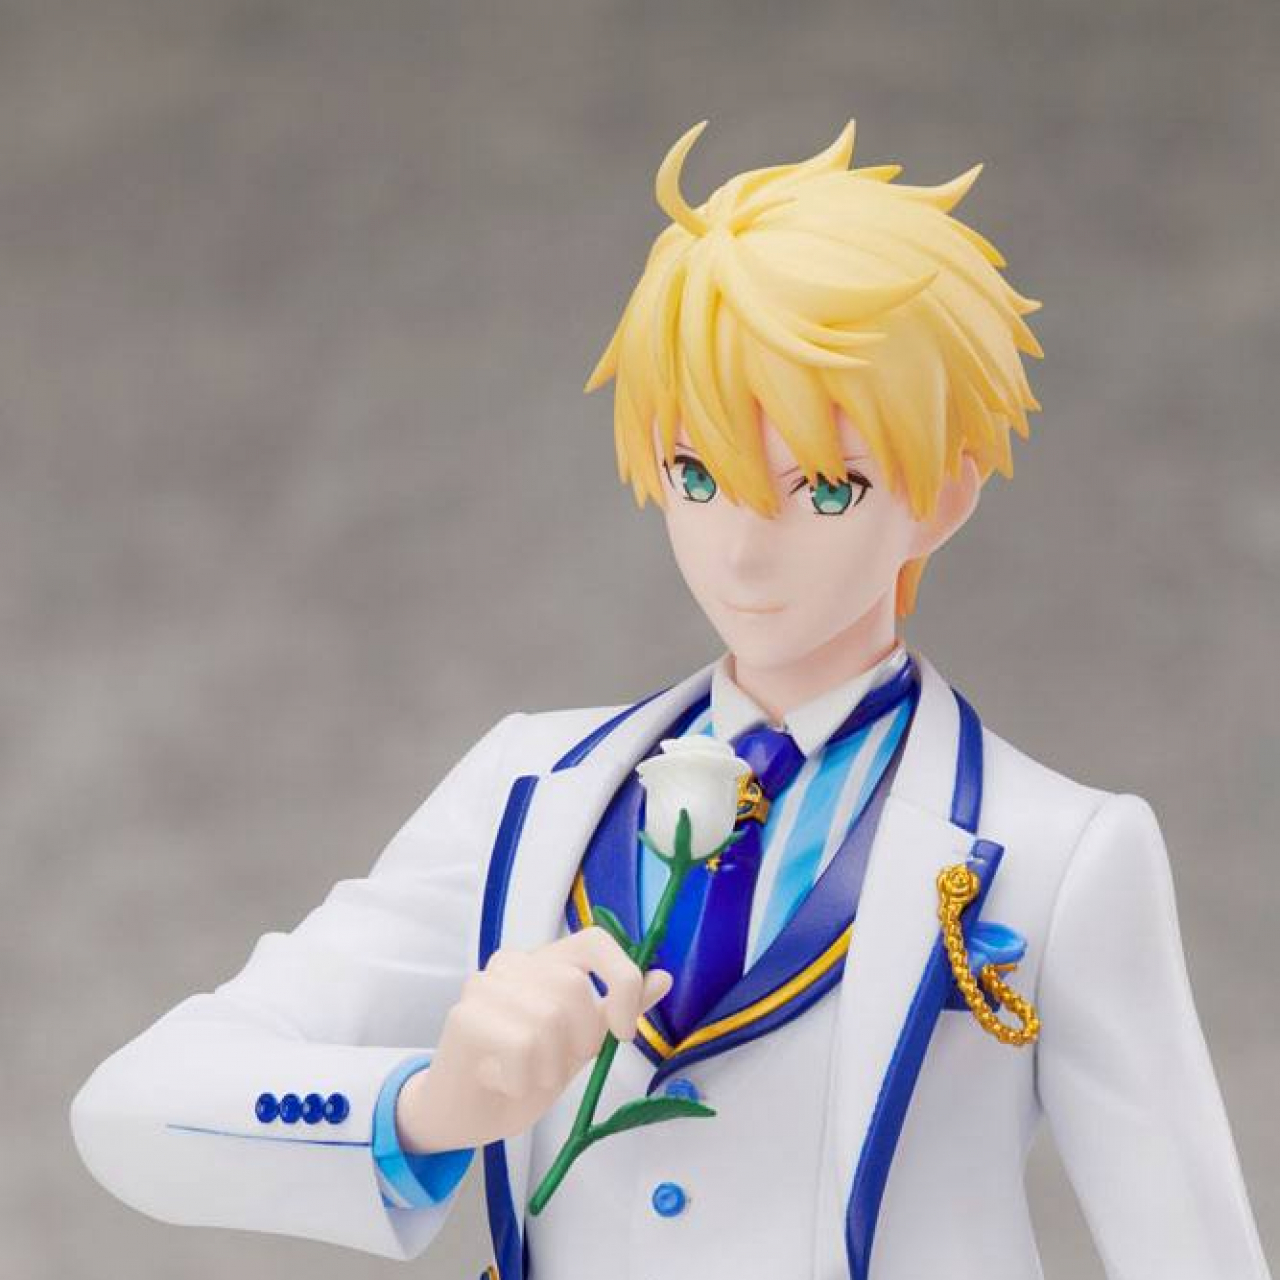 Fate/Grand Order: Saber/Arthur Pendragon (28cm, 1/7 scale, White Rose ver.)